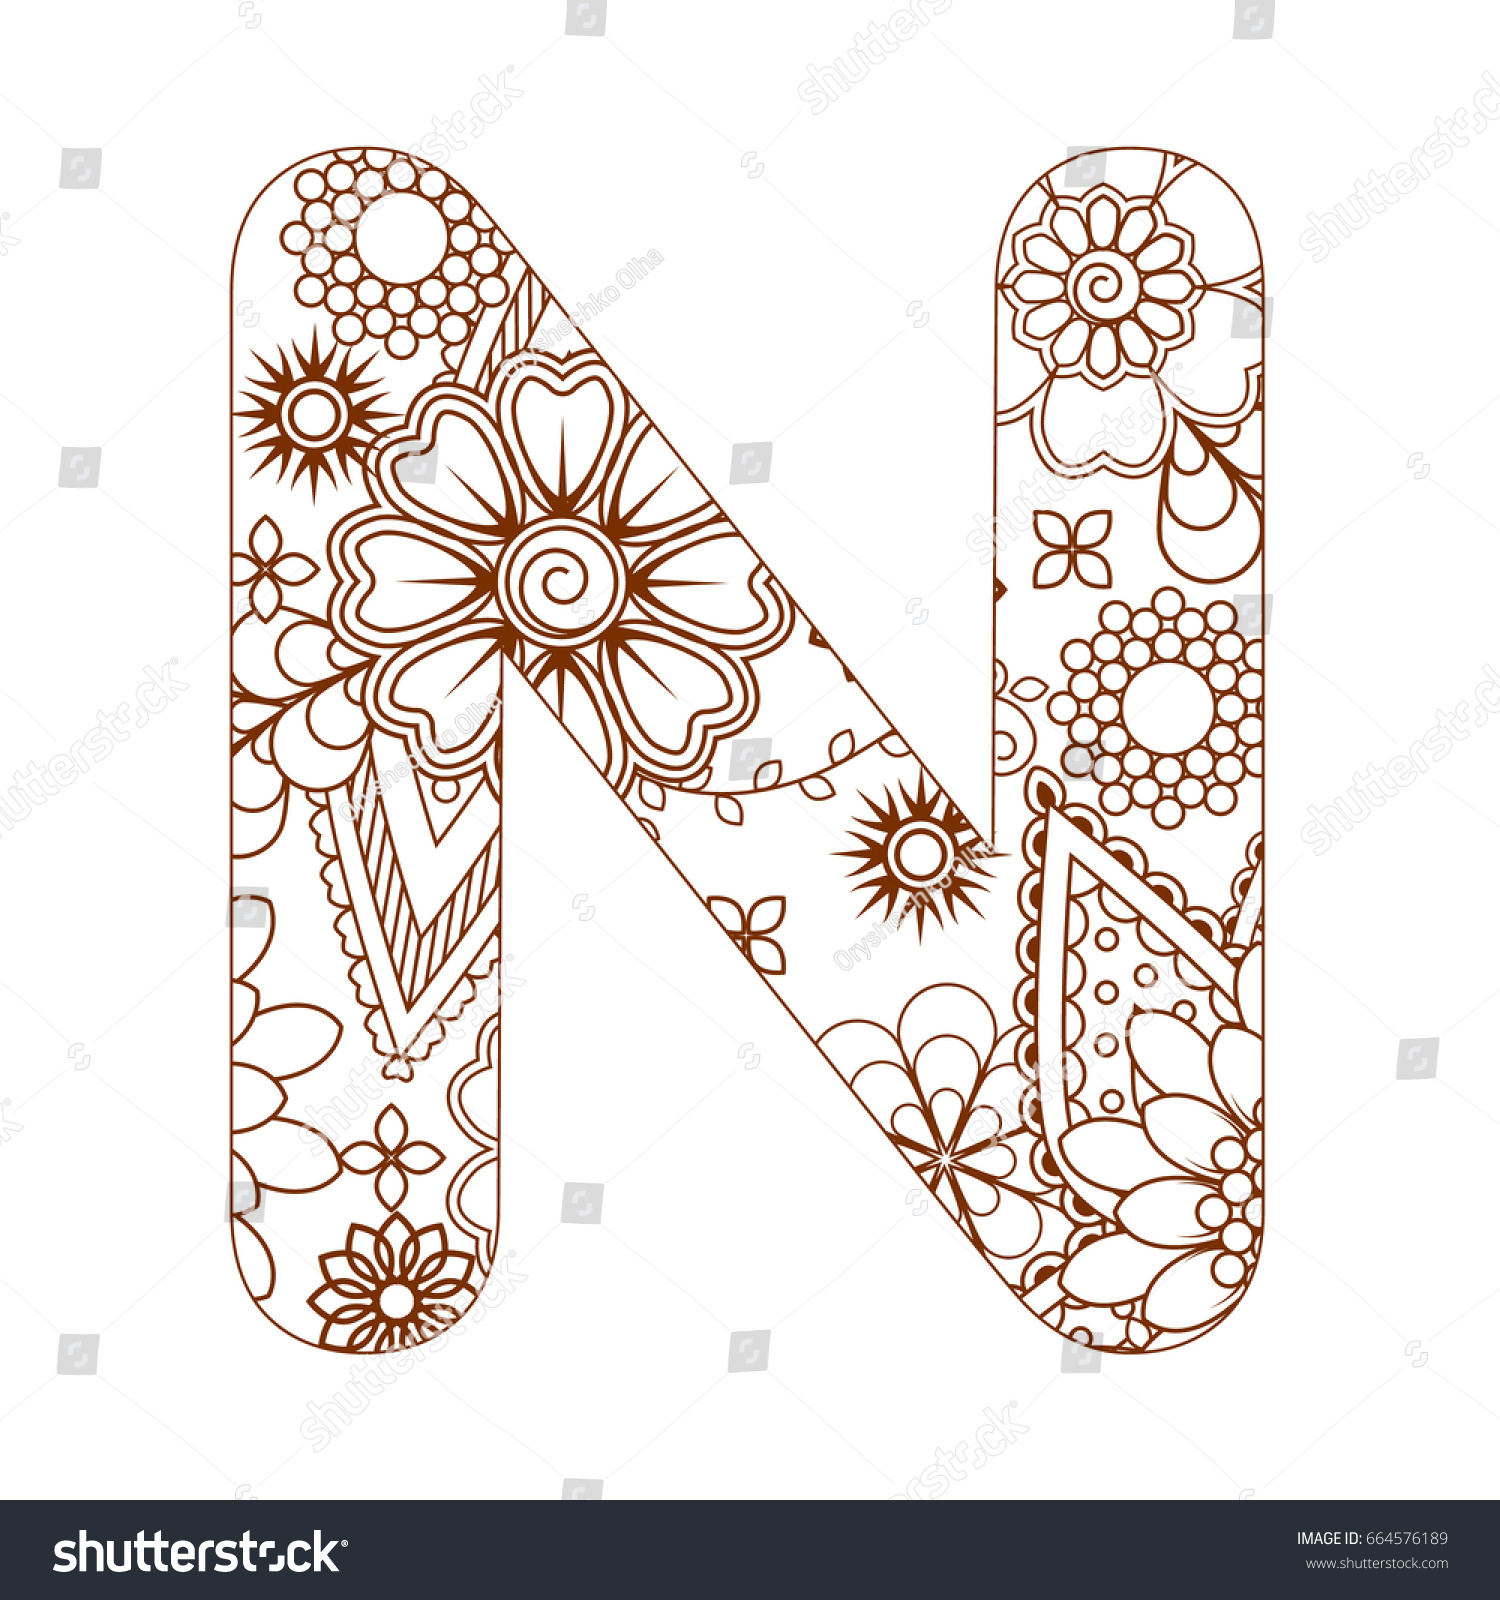 Adult Coloring Page Letter N Alphabet Stock Vector (Royalty Free ...